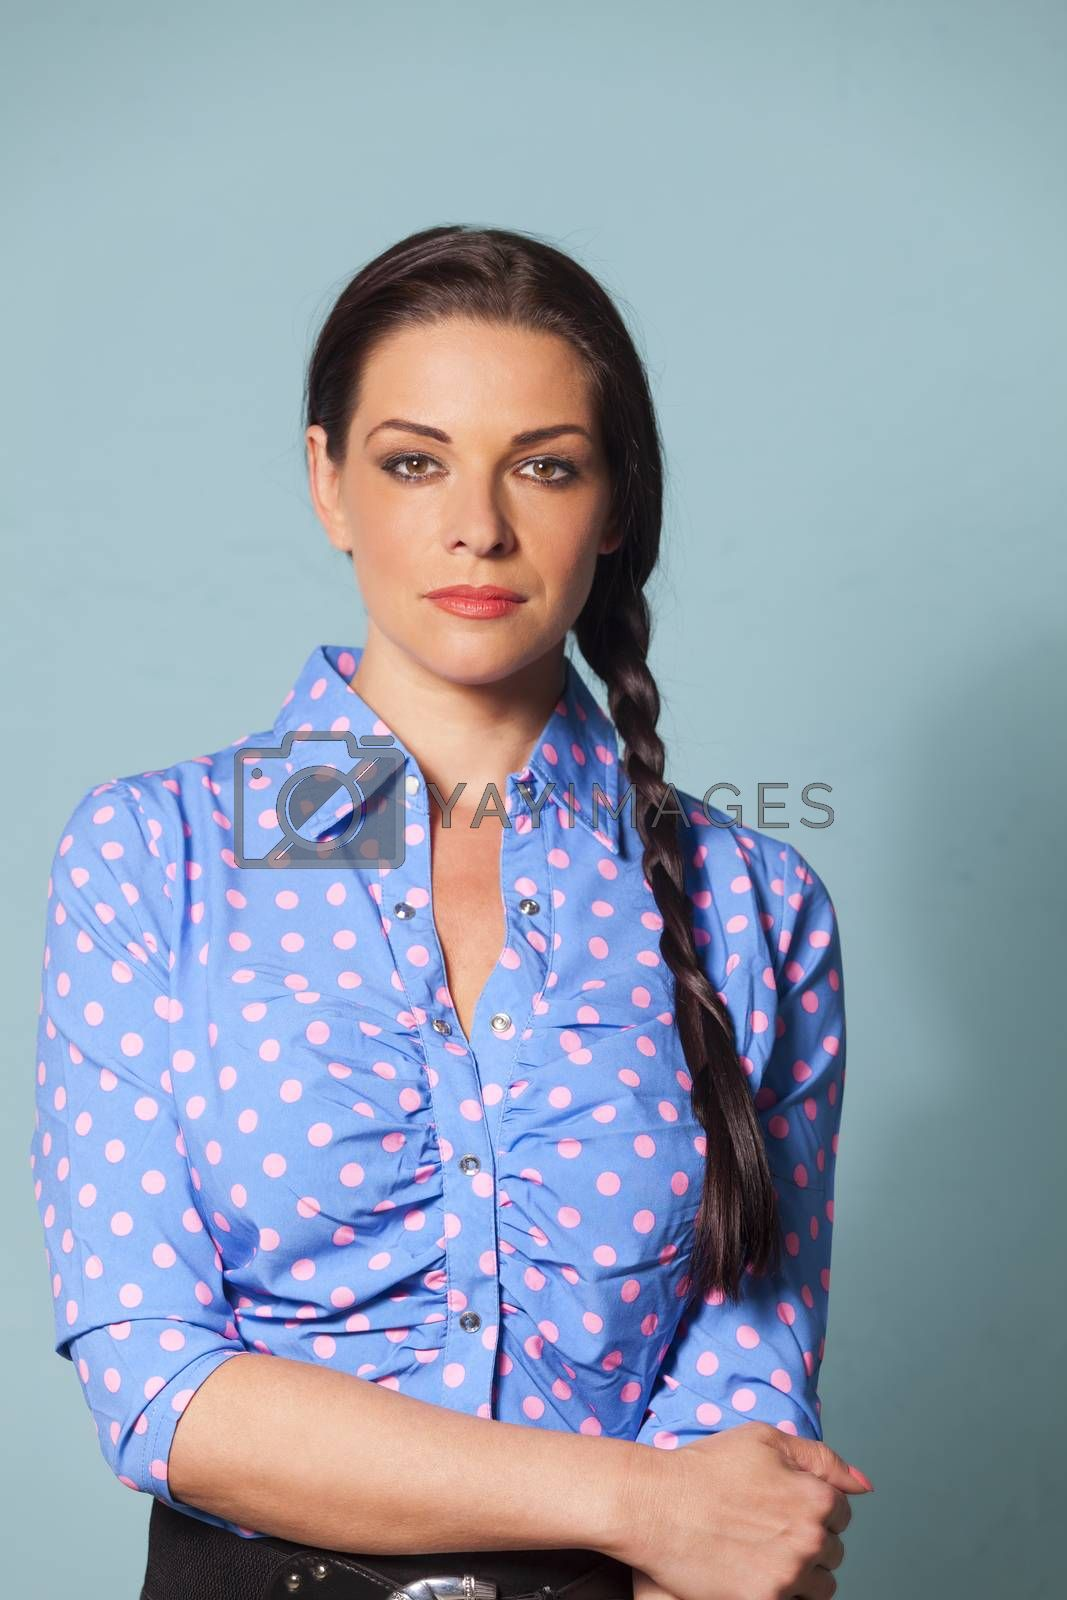 Royalty free image of woman with a dotted blouse  by bernjuer